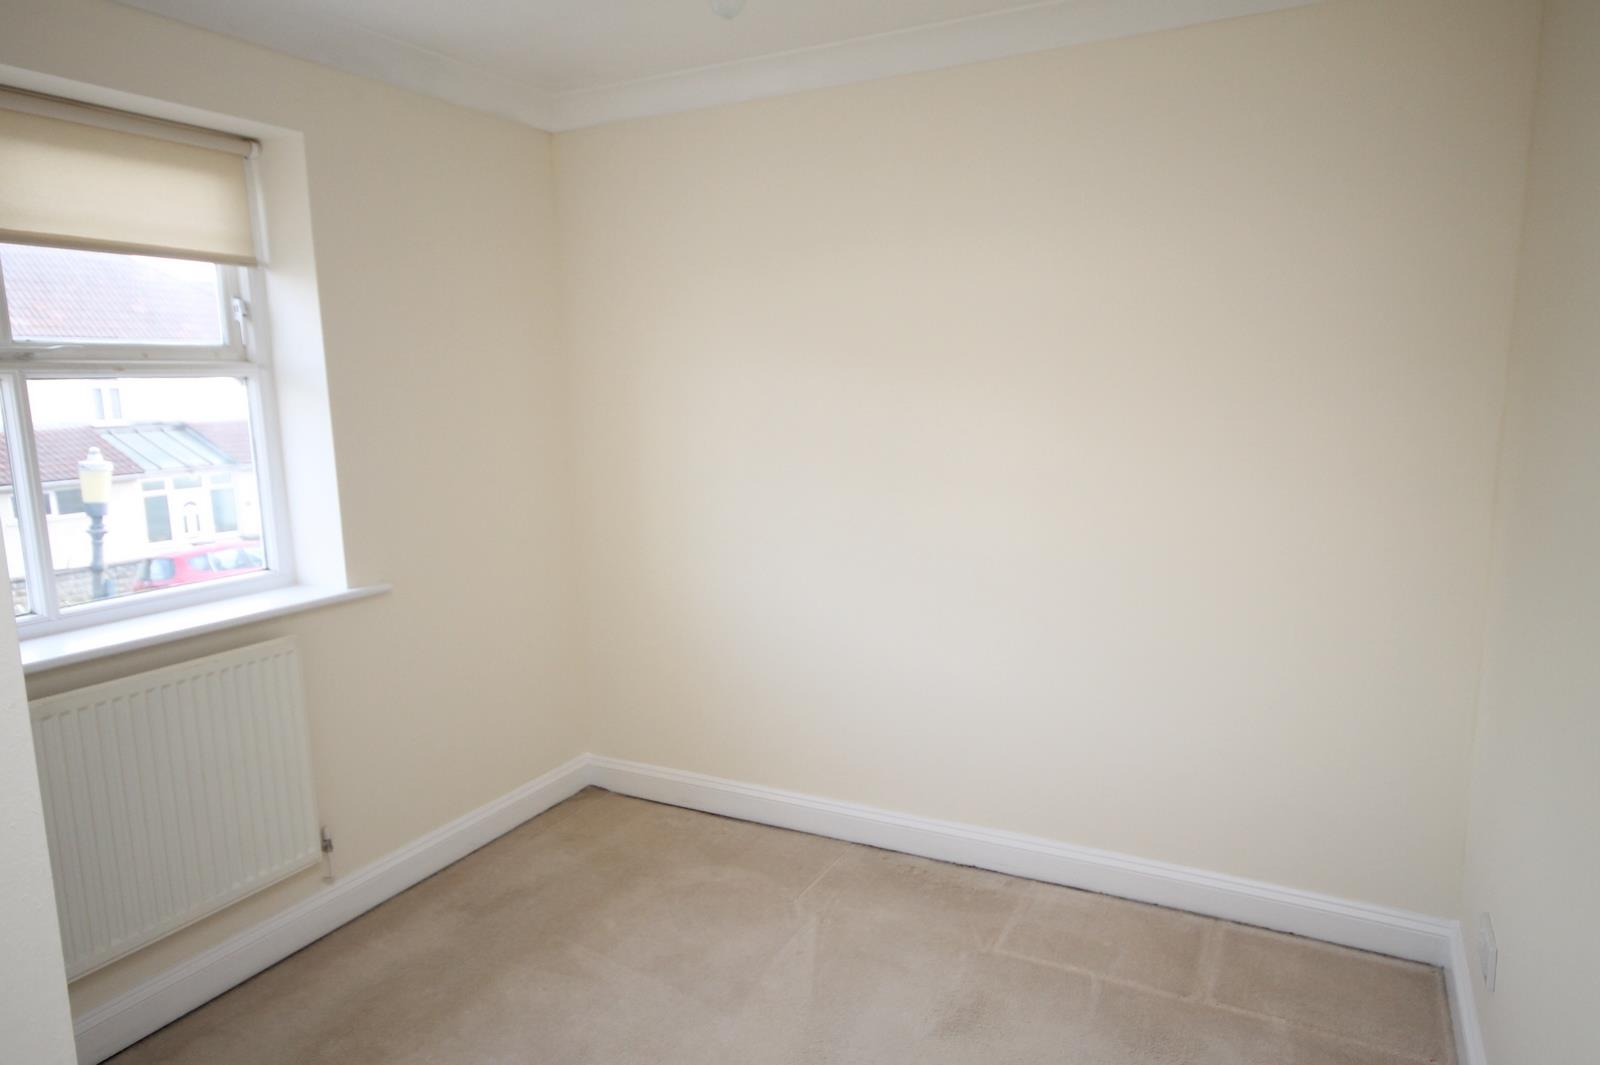 4 bed house to rent in Reedley Road, Bristol 7